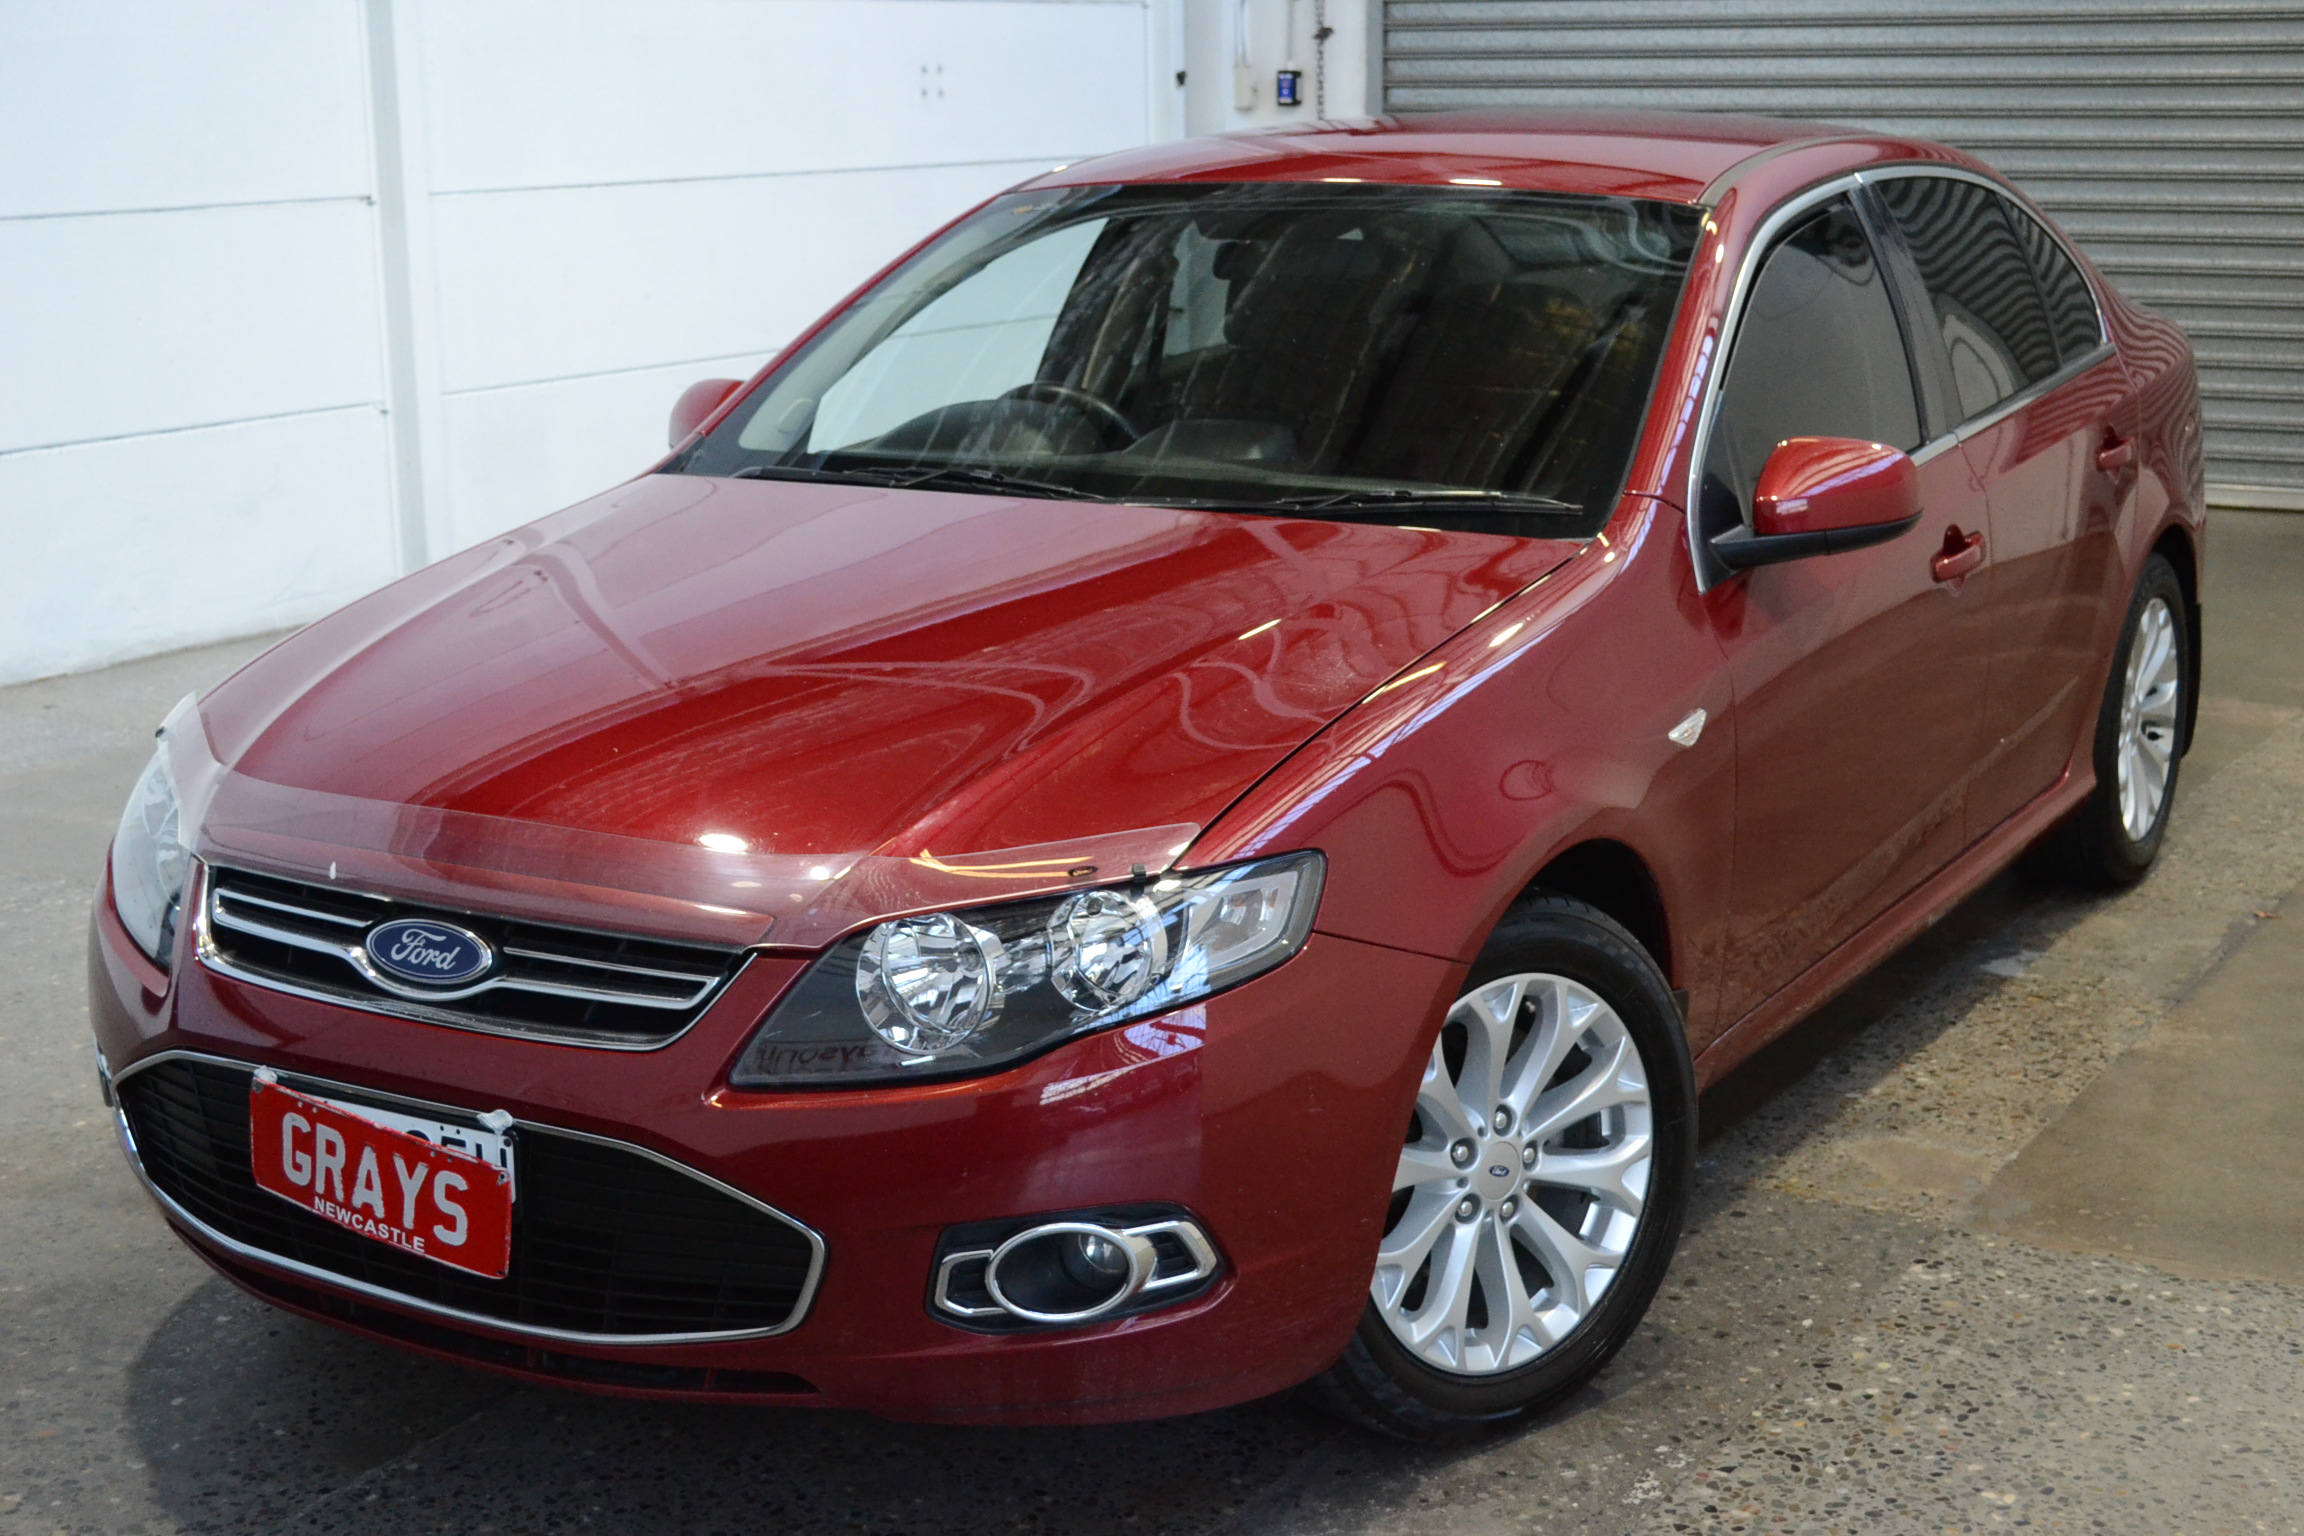 2013 Ford Falcon G6 FG II Automatic Sedan